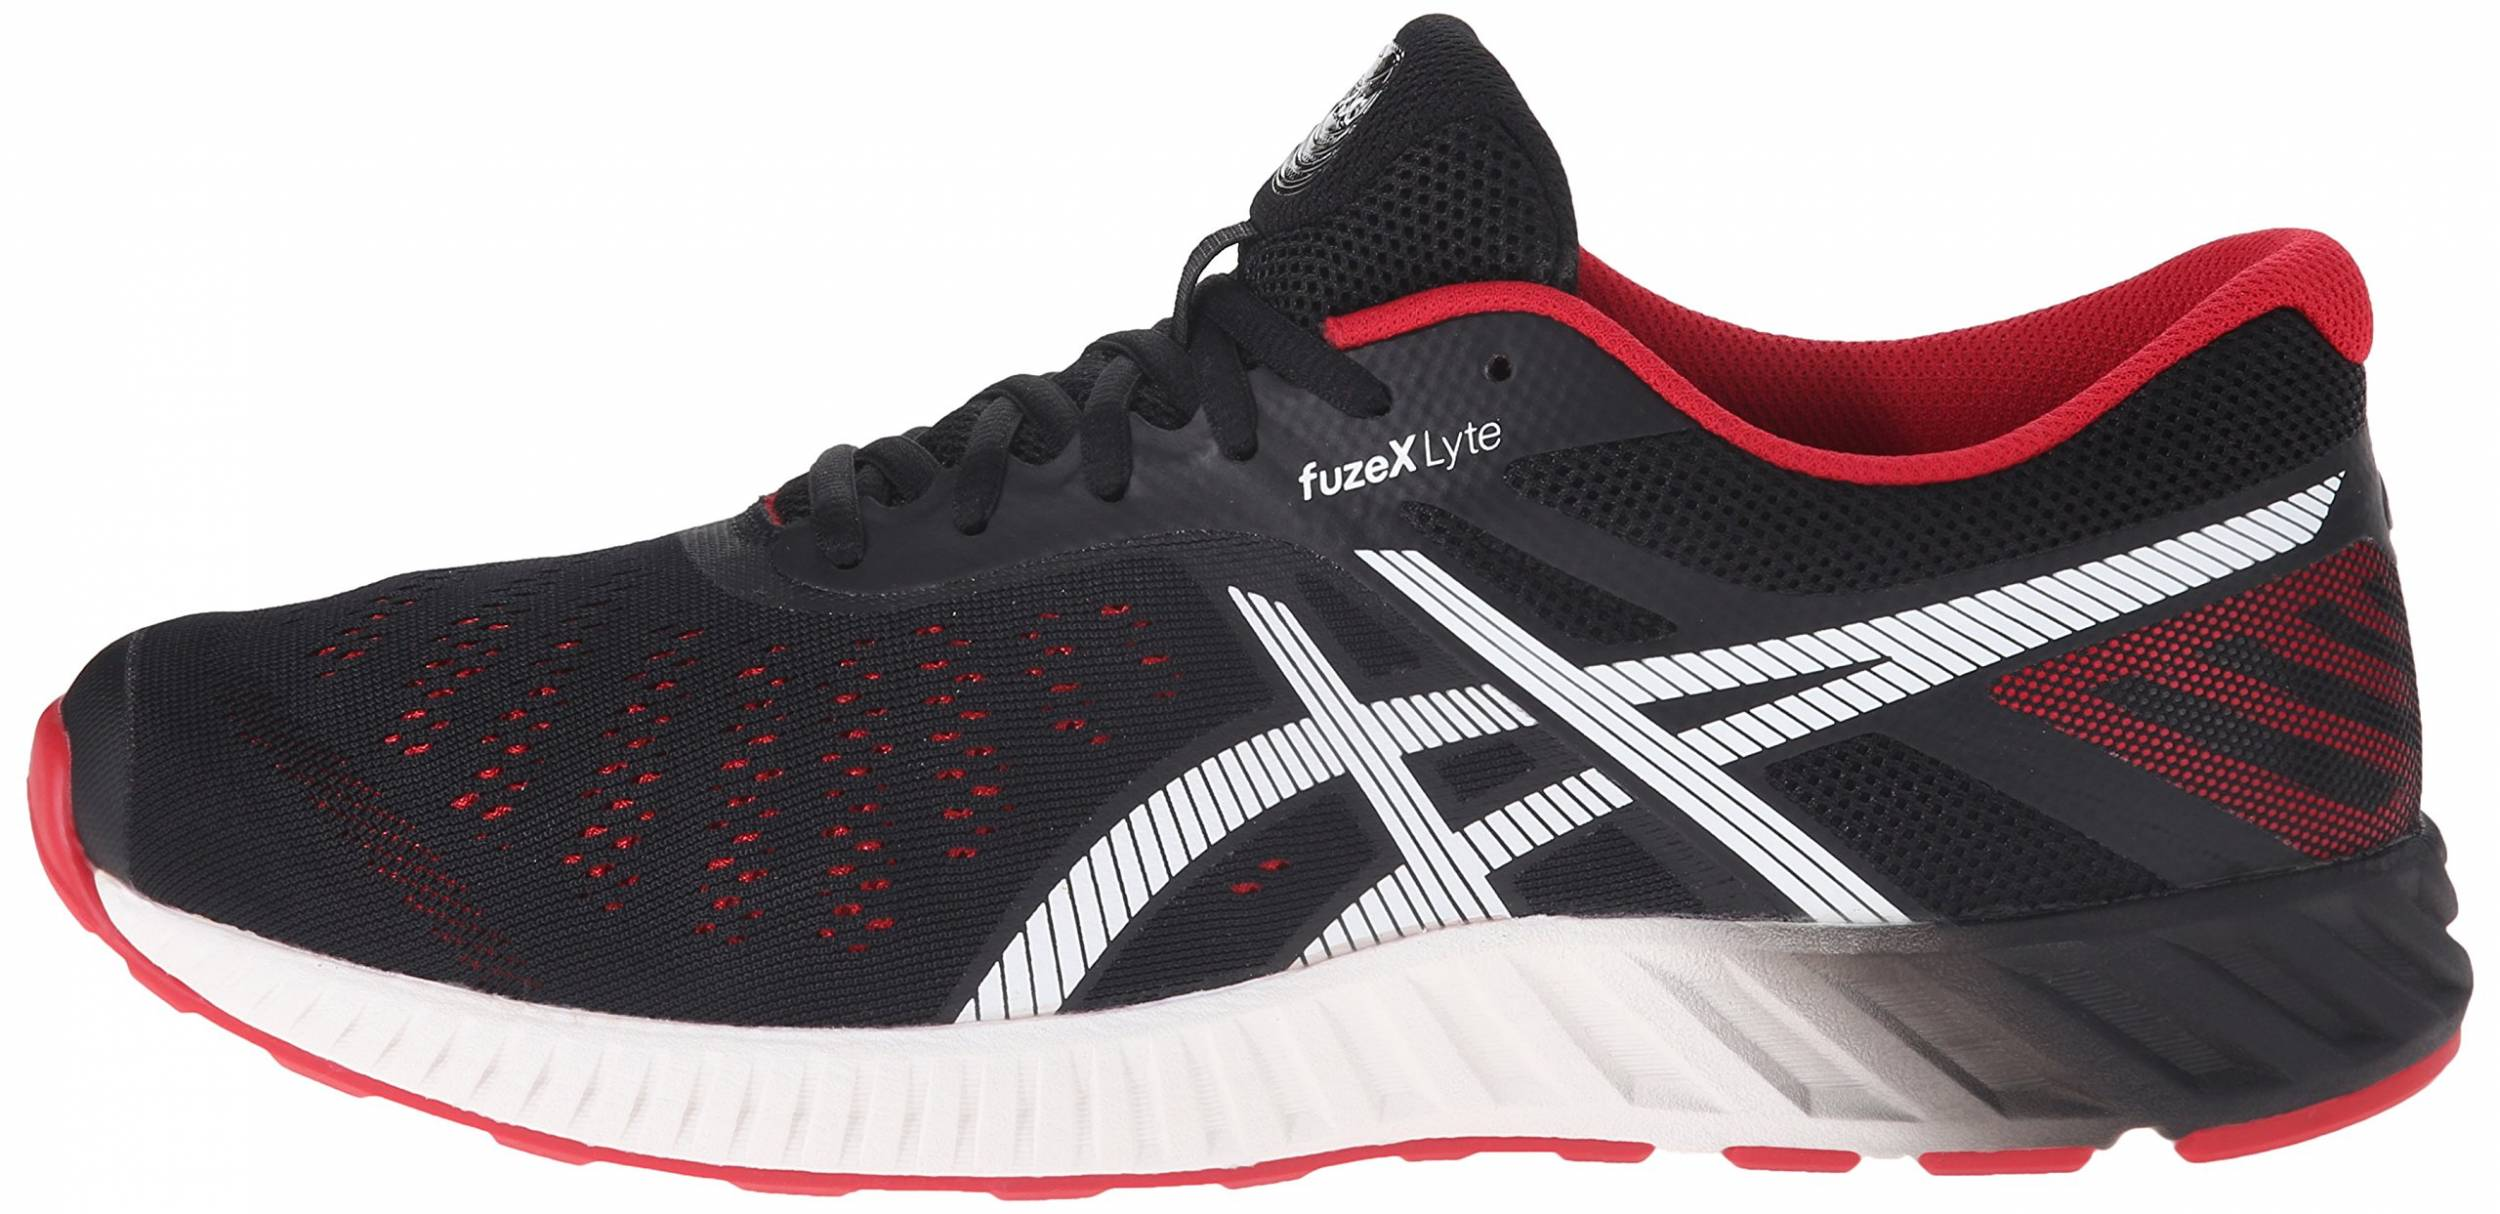 $90 + Review of Asics FuzeX Lyte